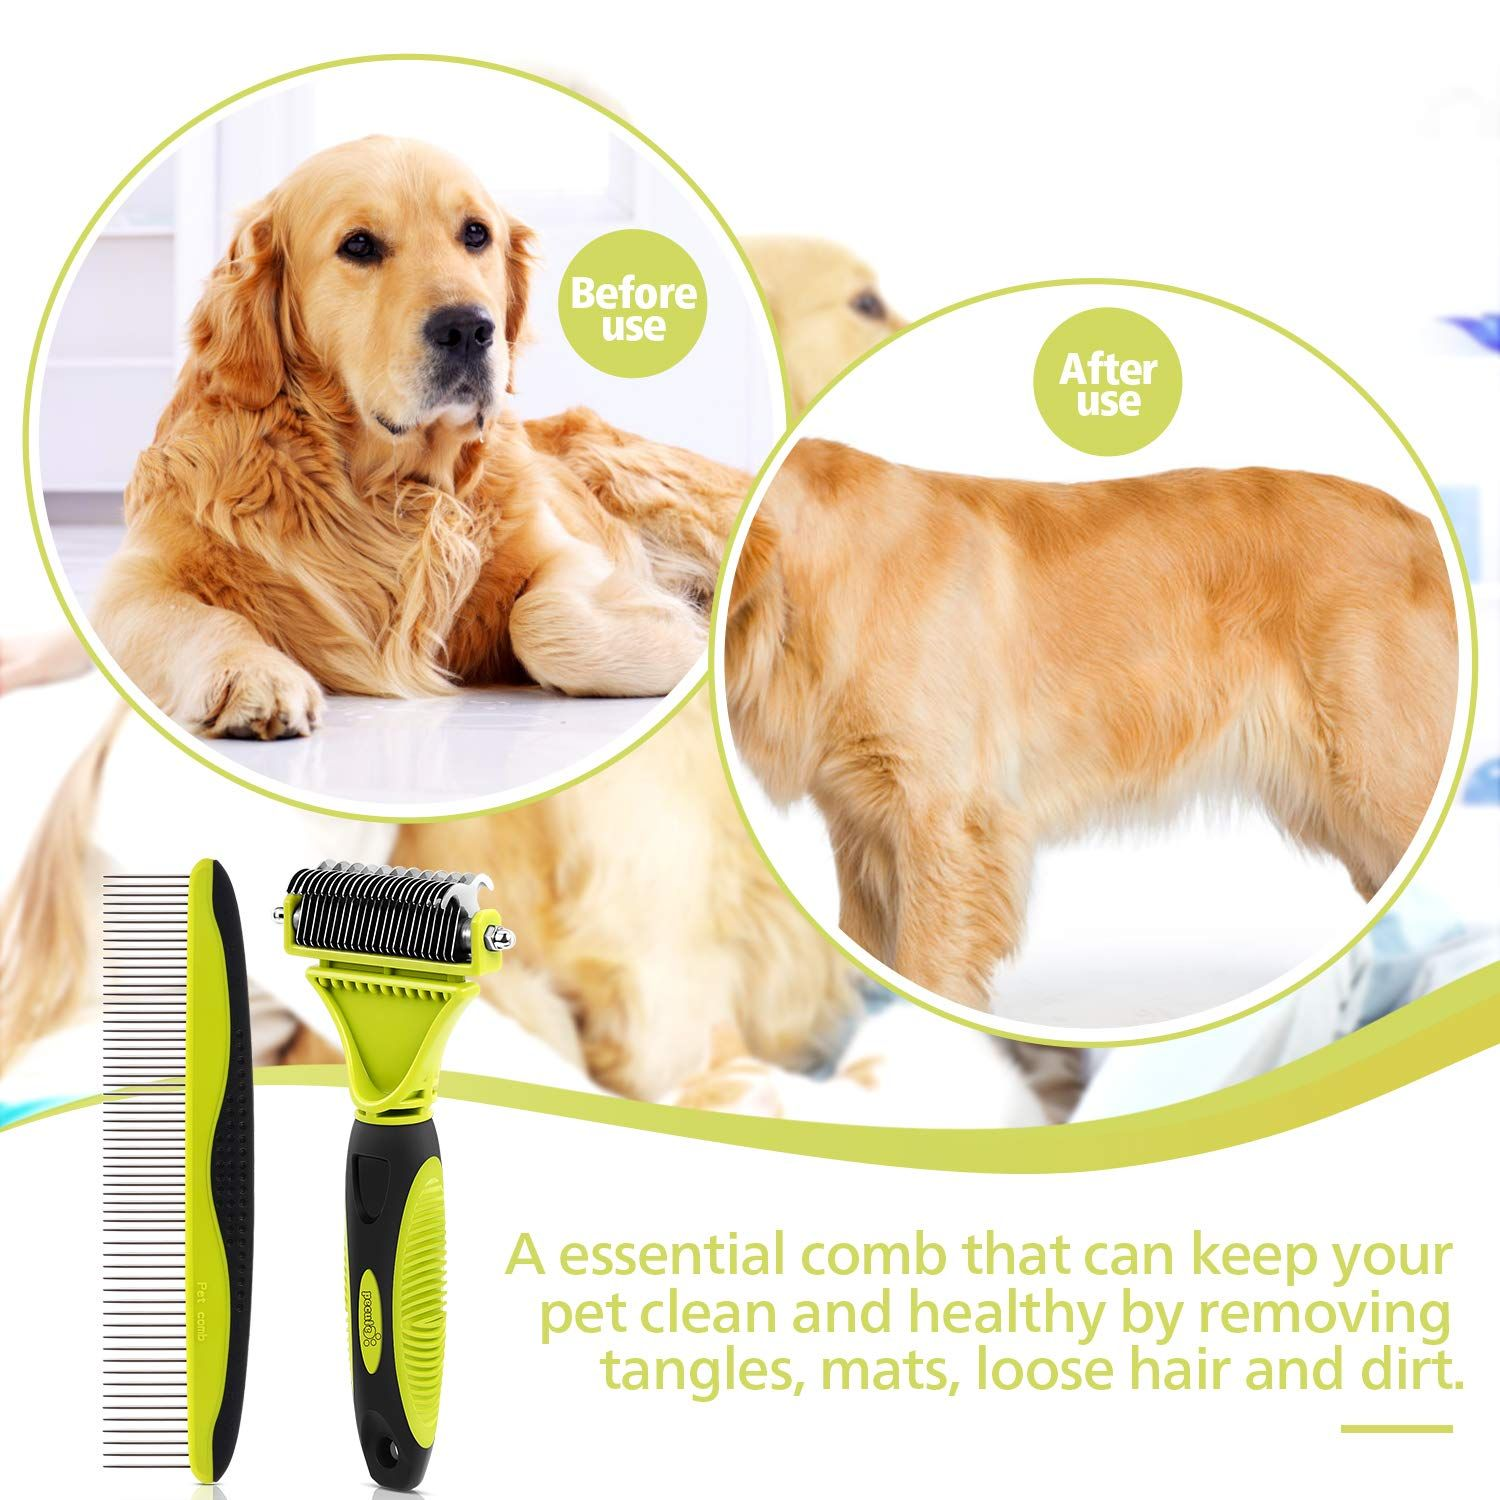 Pecute Dematting Comb Grooming Tool Kit For Dog Cat Double Sided Blade Rake Comb With Grooming Brush In 2020 Dog Safe Pets Pet Hair